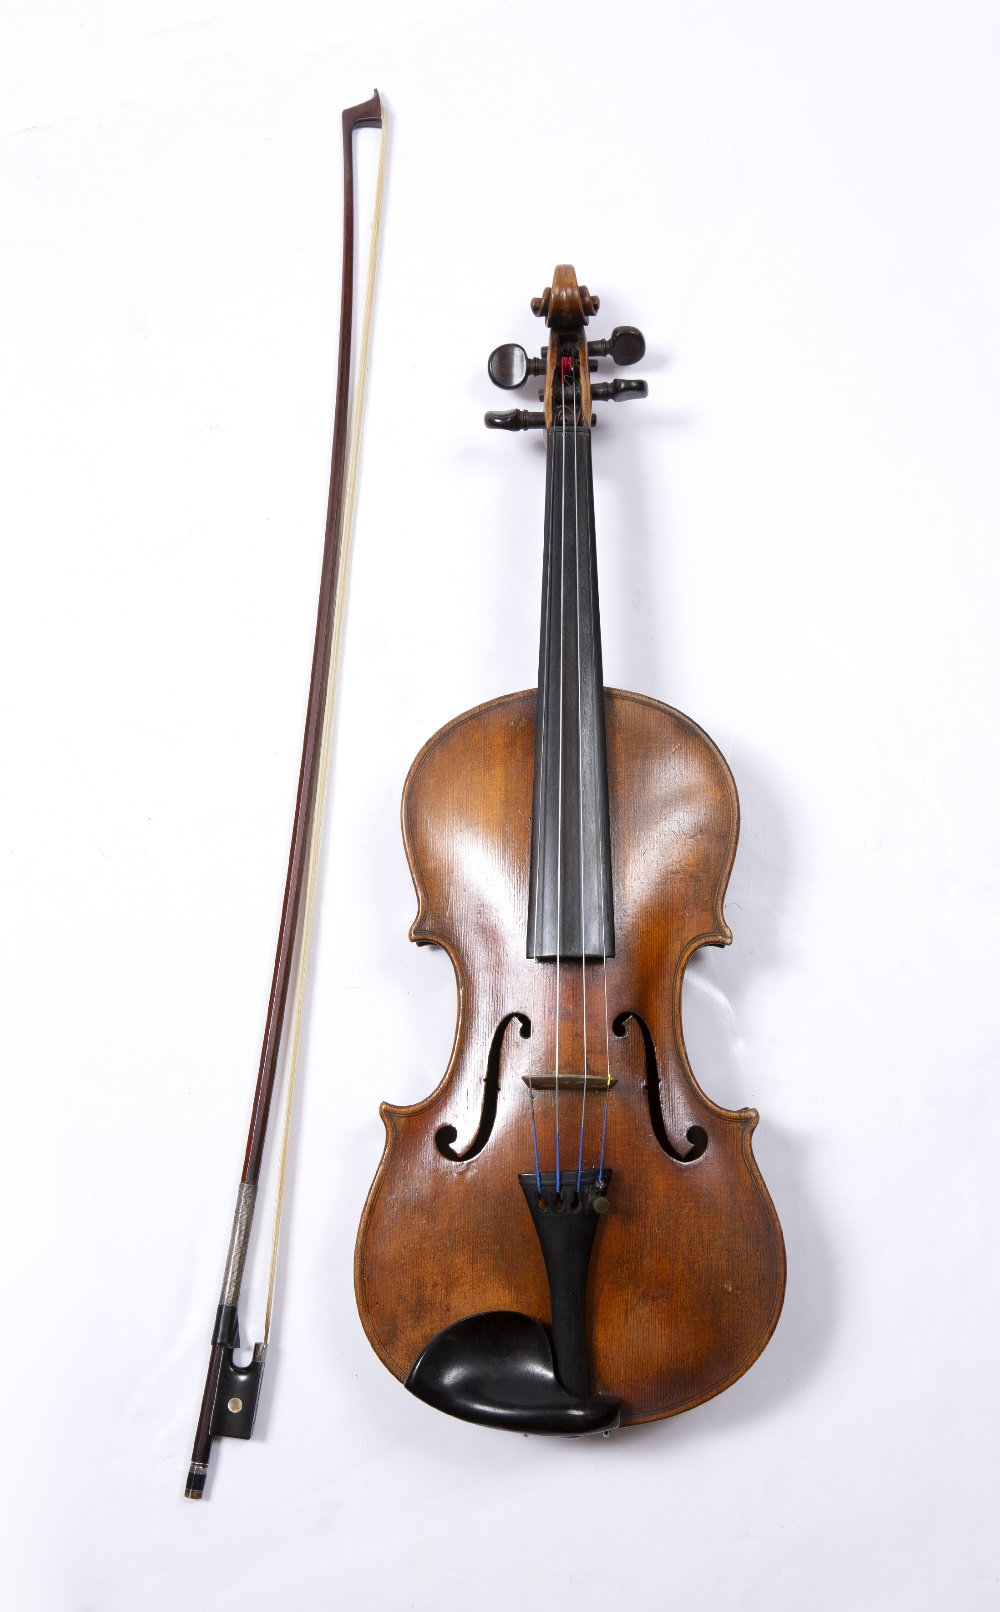 A LATE 19TH CENTURY GERMAN VIOLIN with two piece back, back length 36cm; with German bow, in